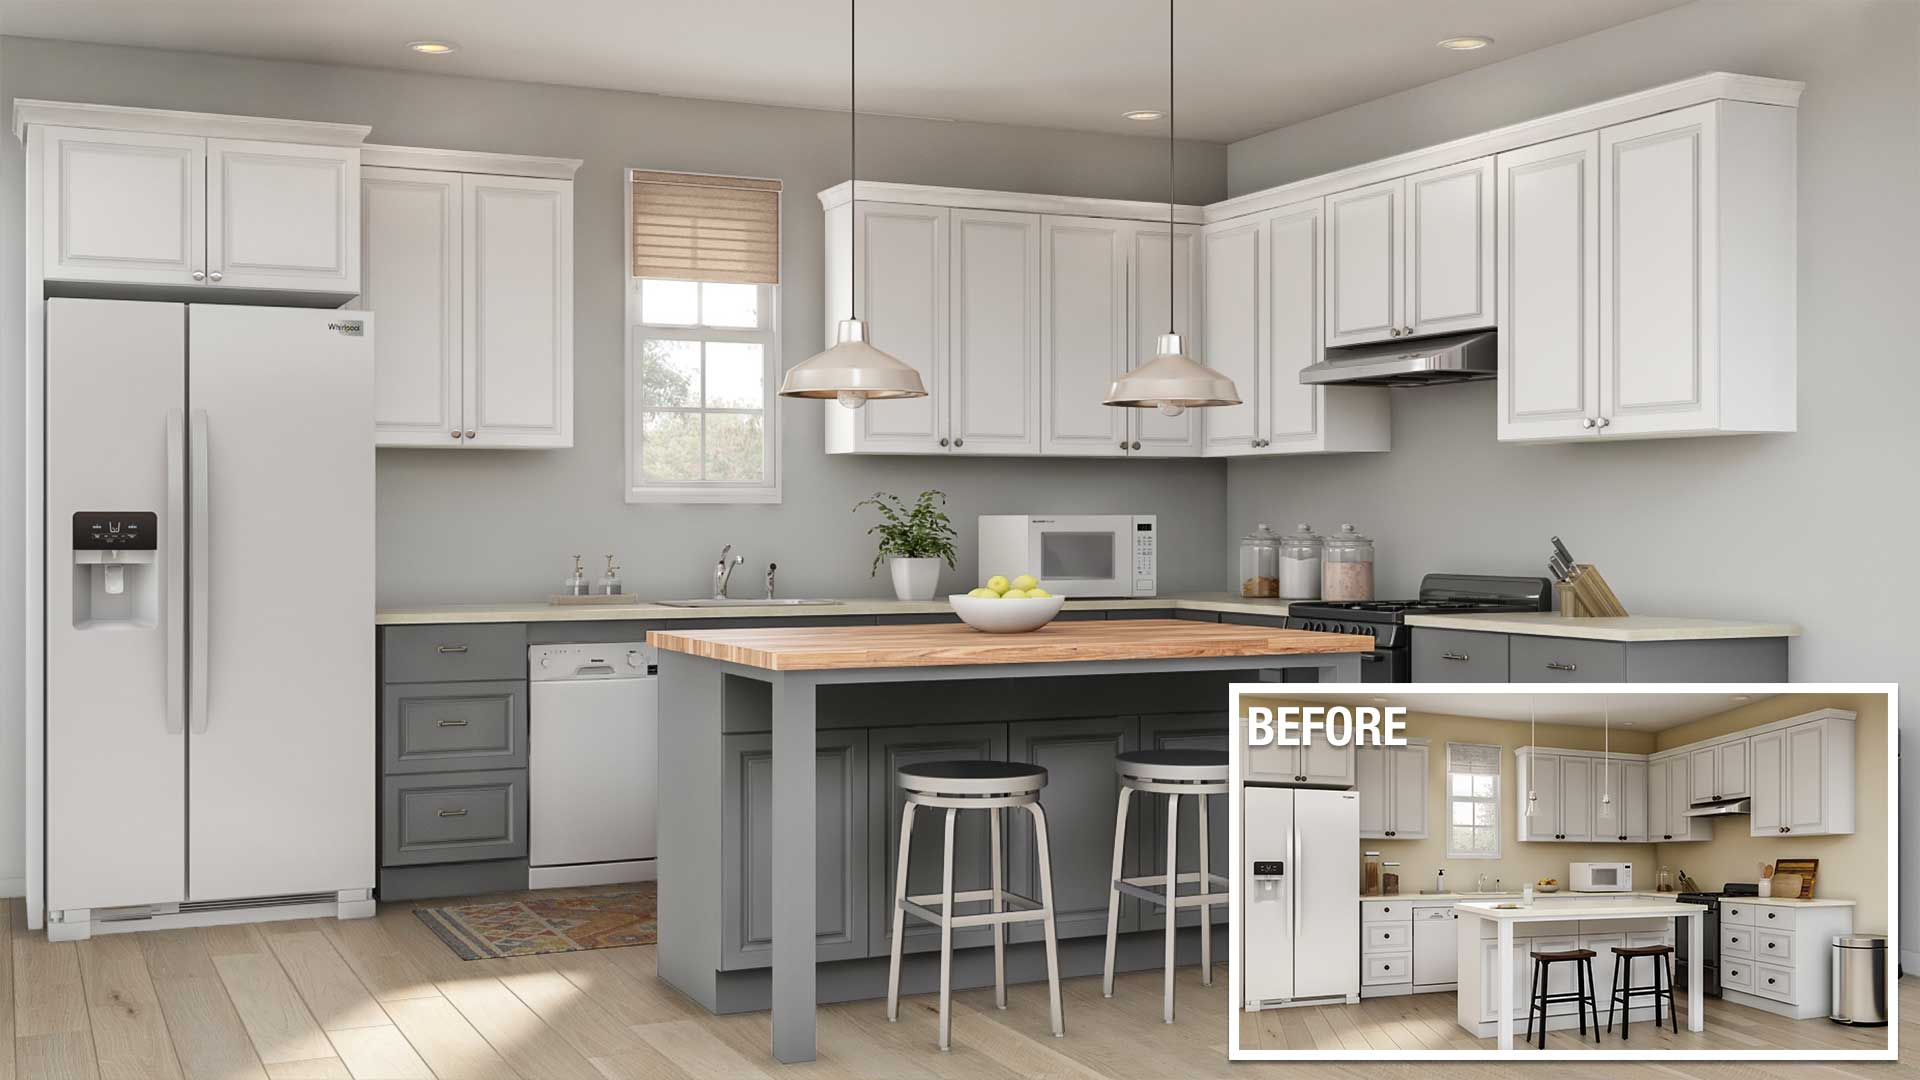 Kitchen Renovation Cost To Remodel A Kitchen The Home Depot